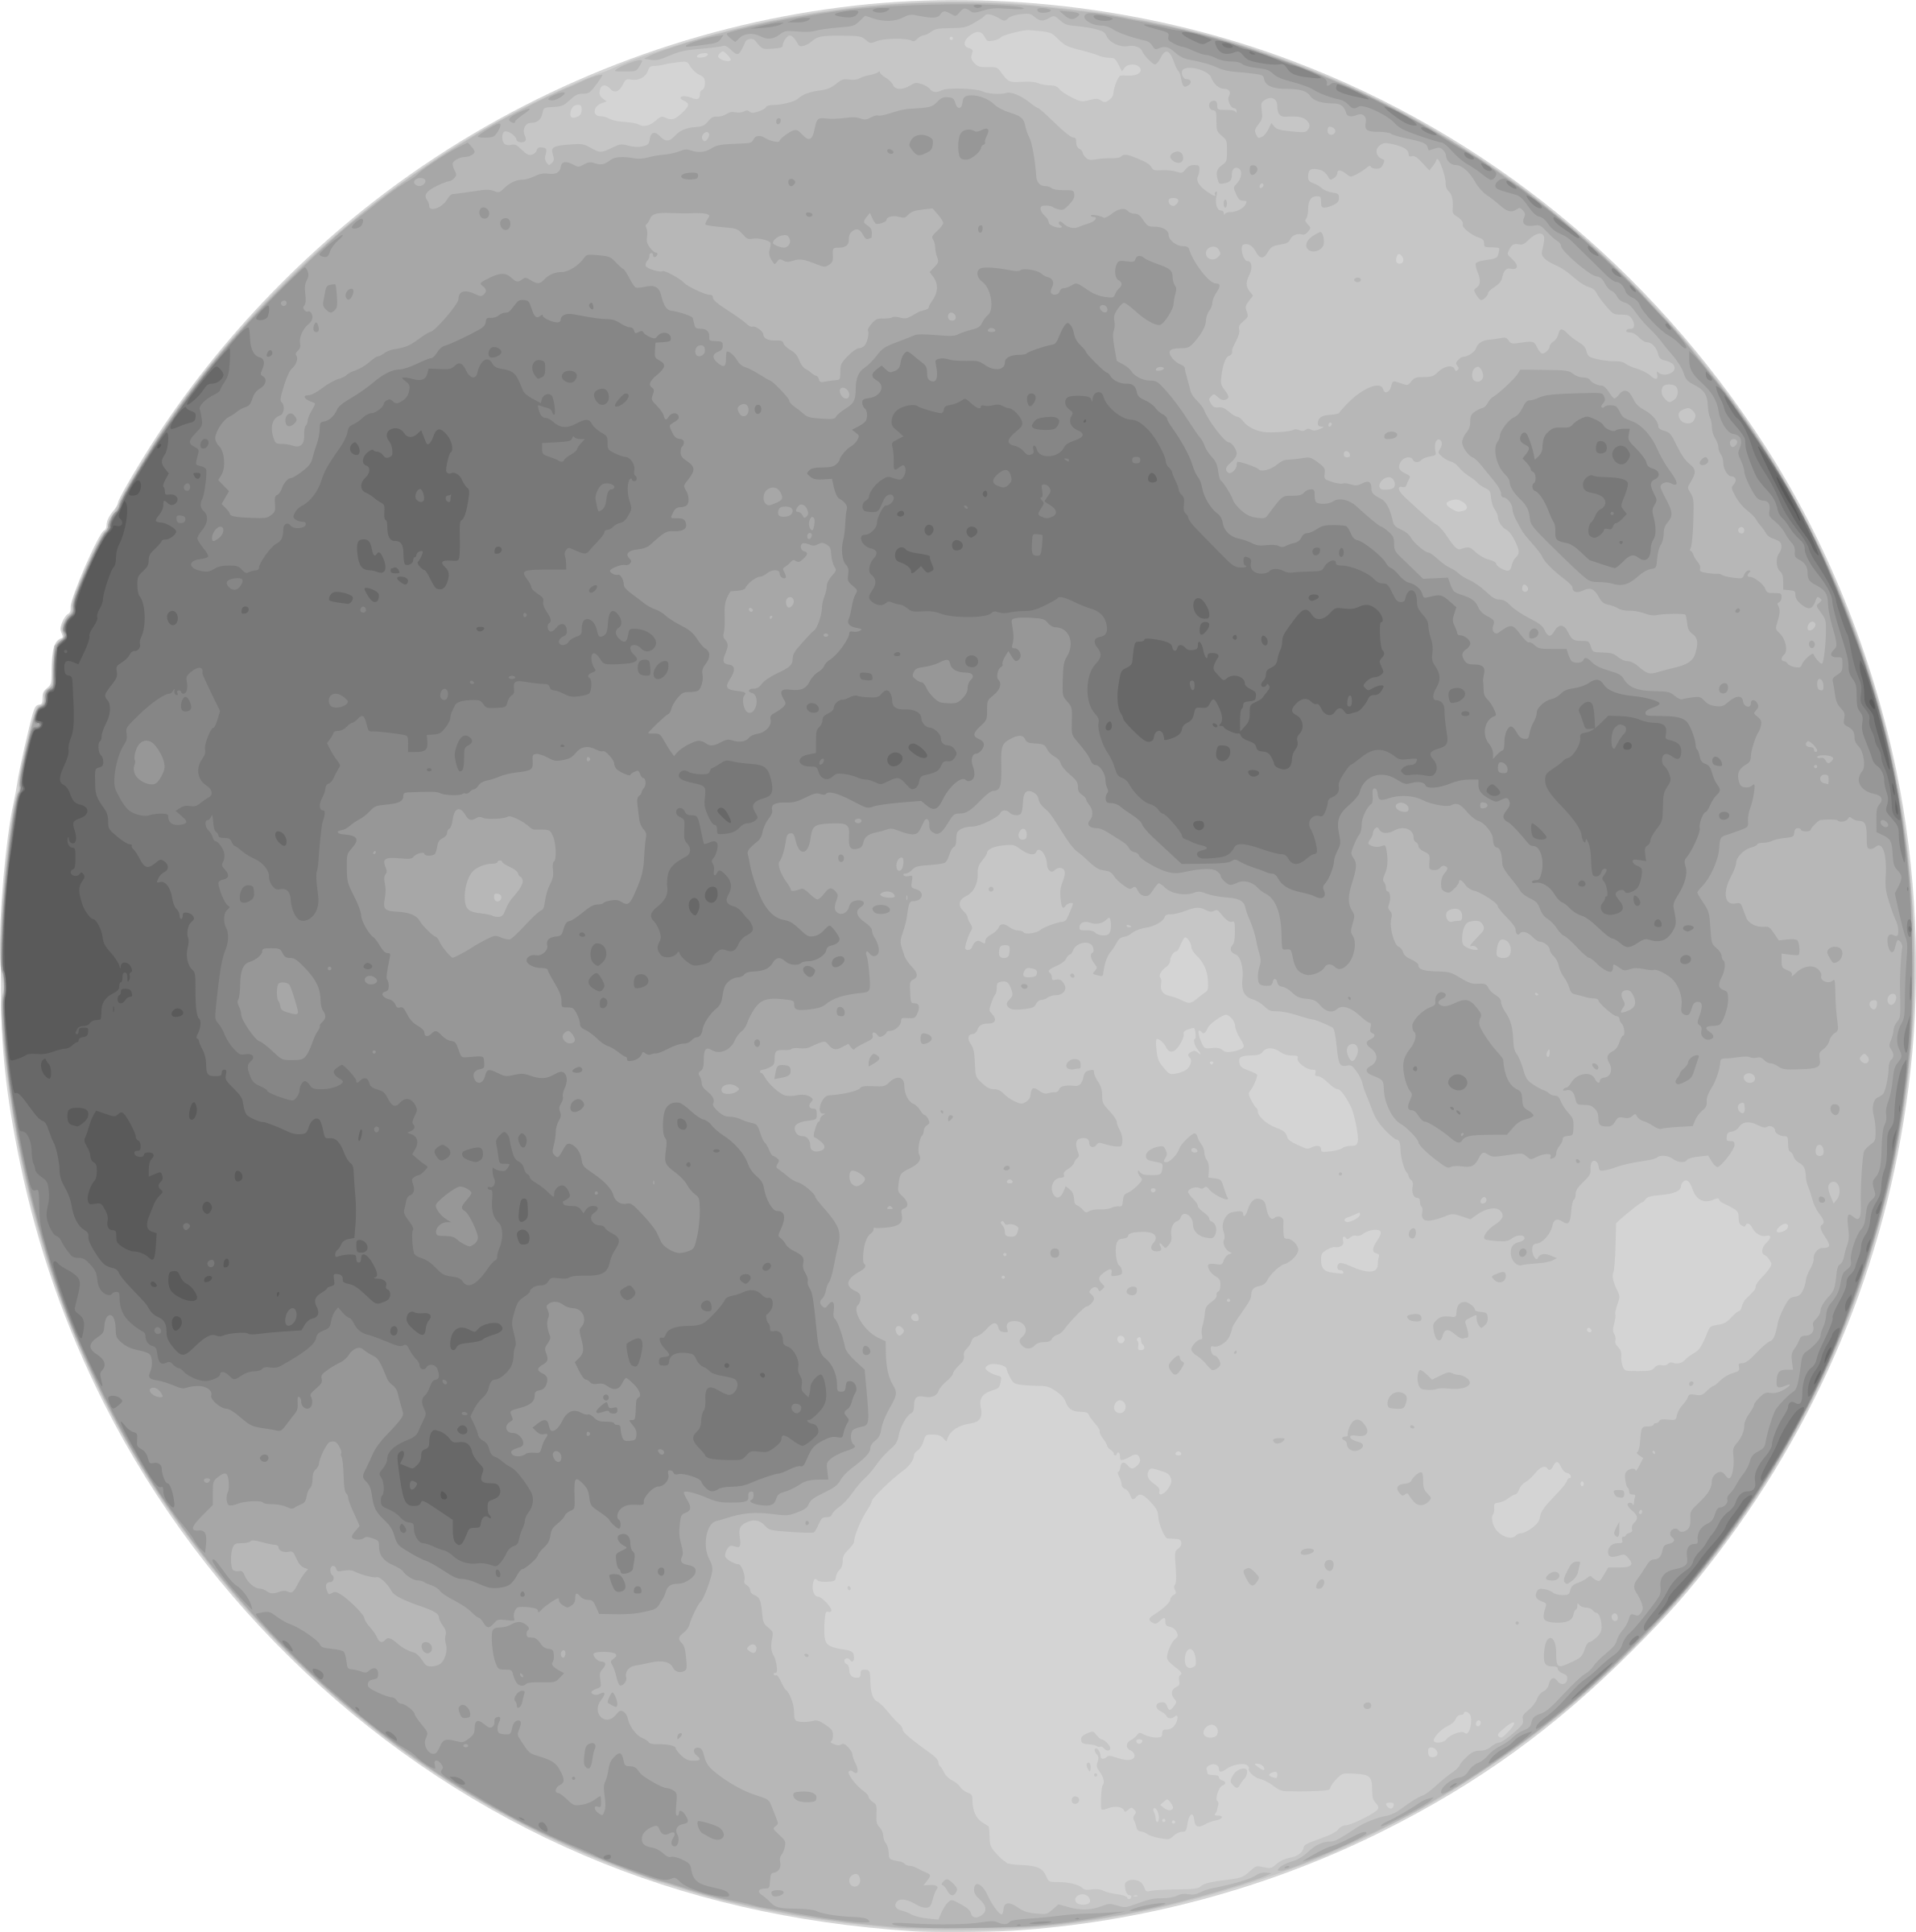 banner transparent download Extremely creative full moon. Meteor clipart clear background.